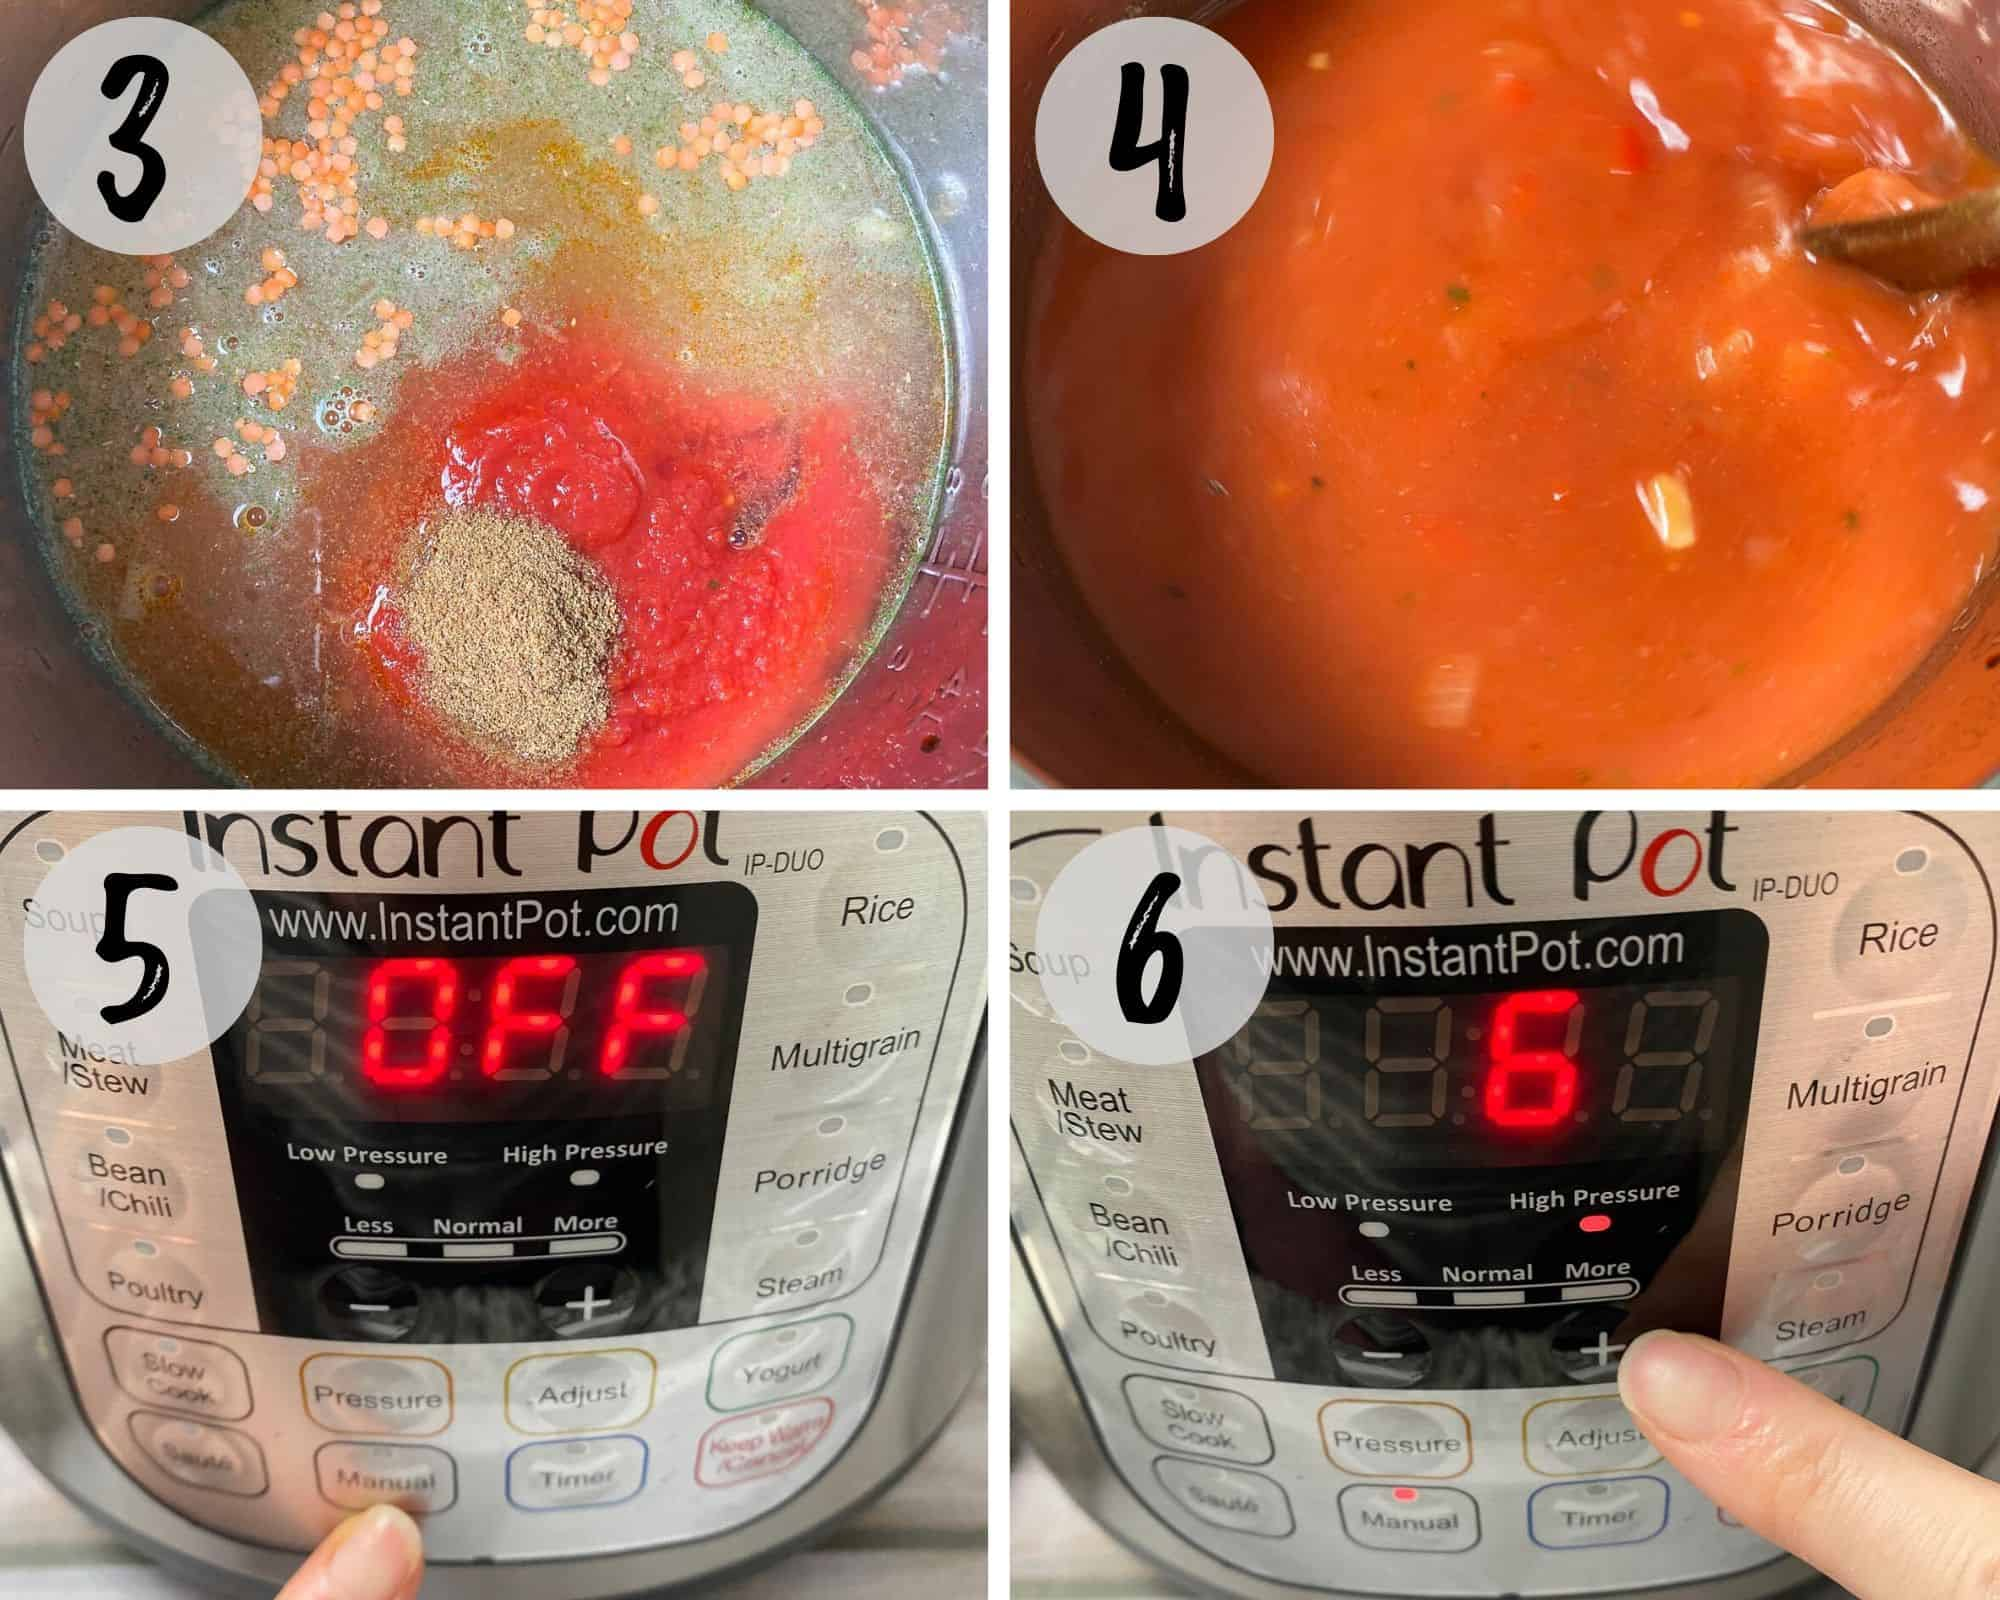 hand setting the instant pot to manual pressure for 6 minutes